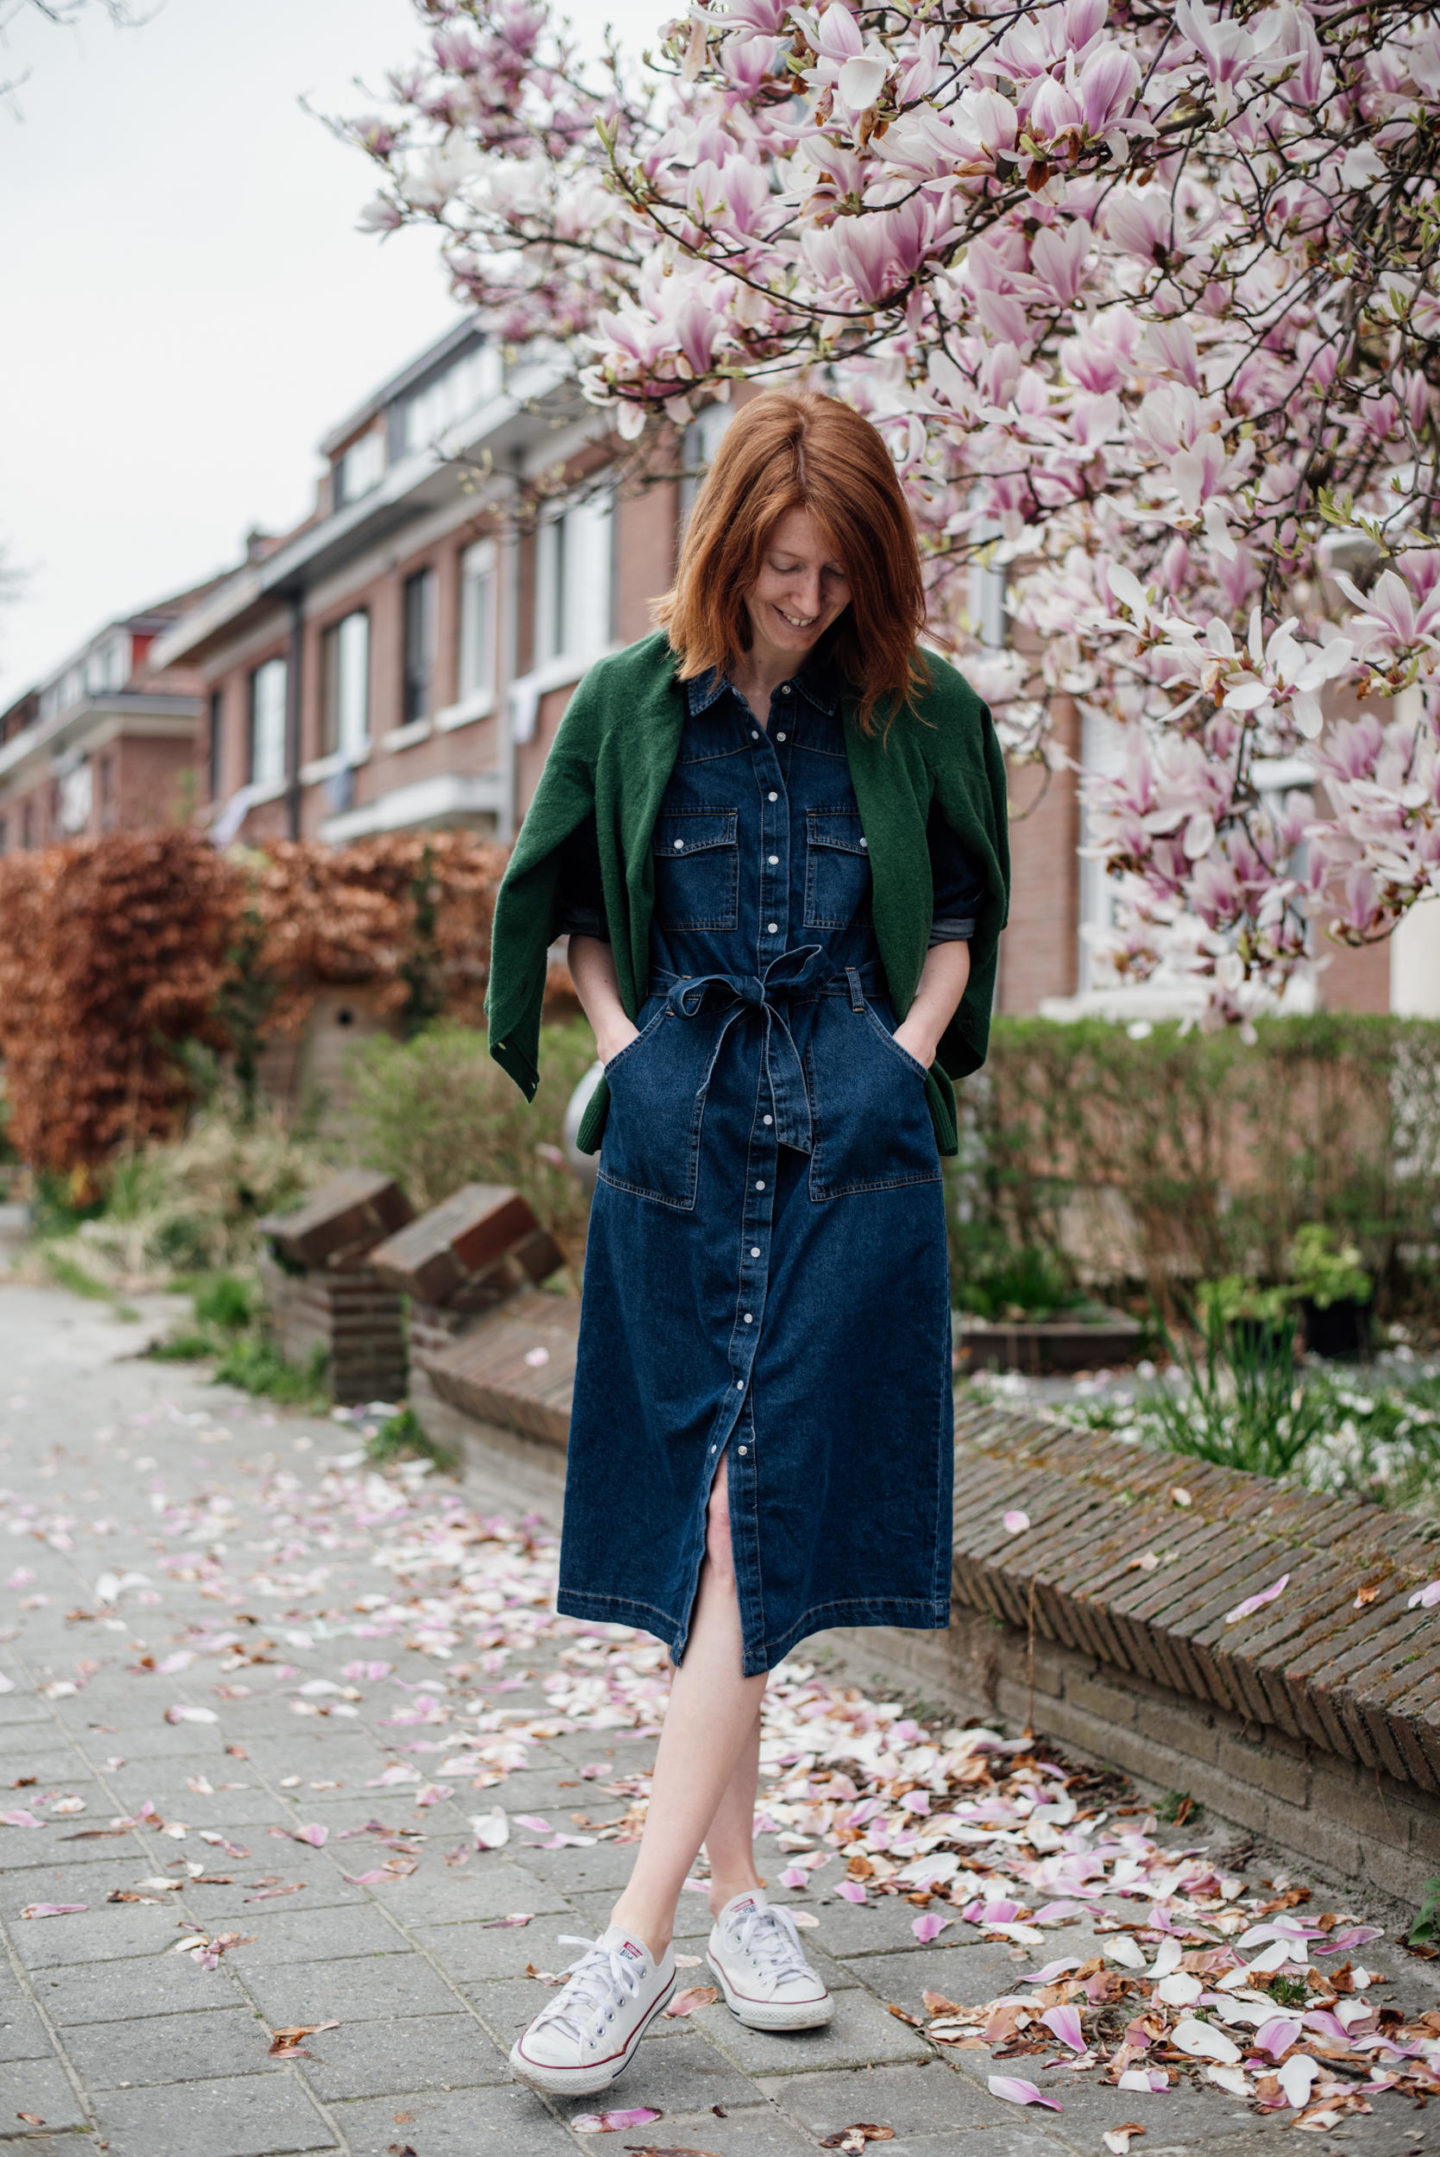 women's outfit with a blue jeans dress